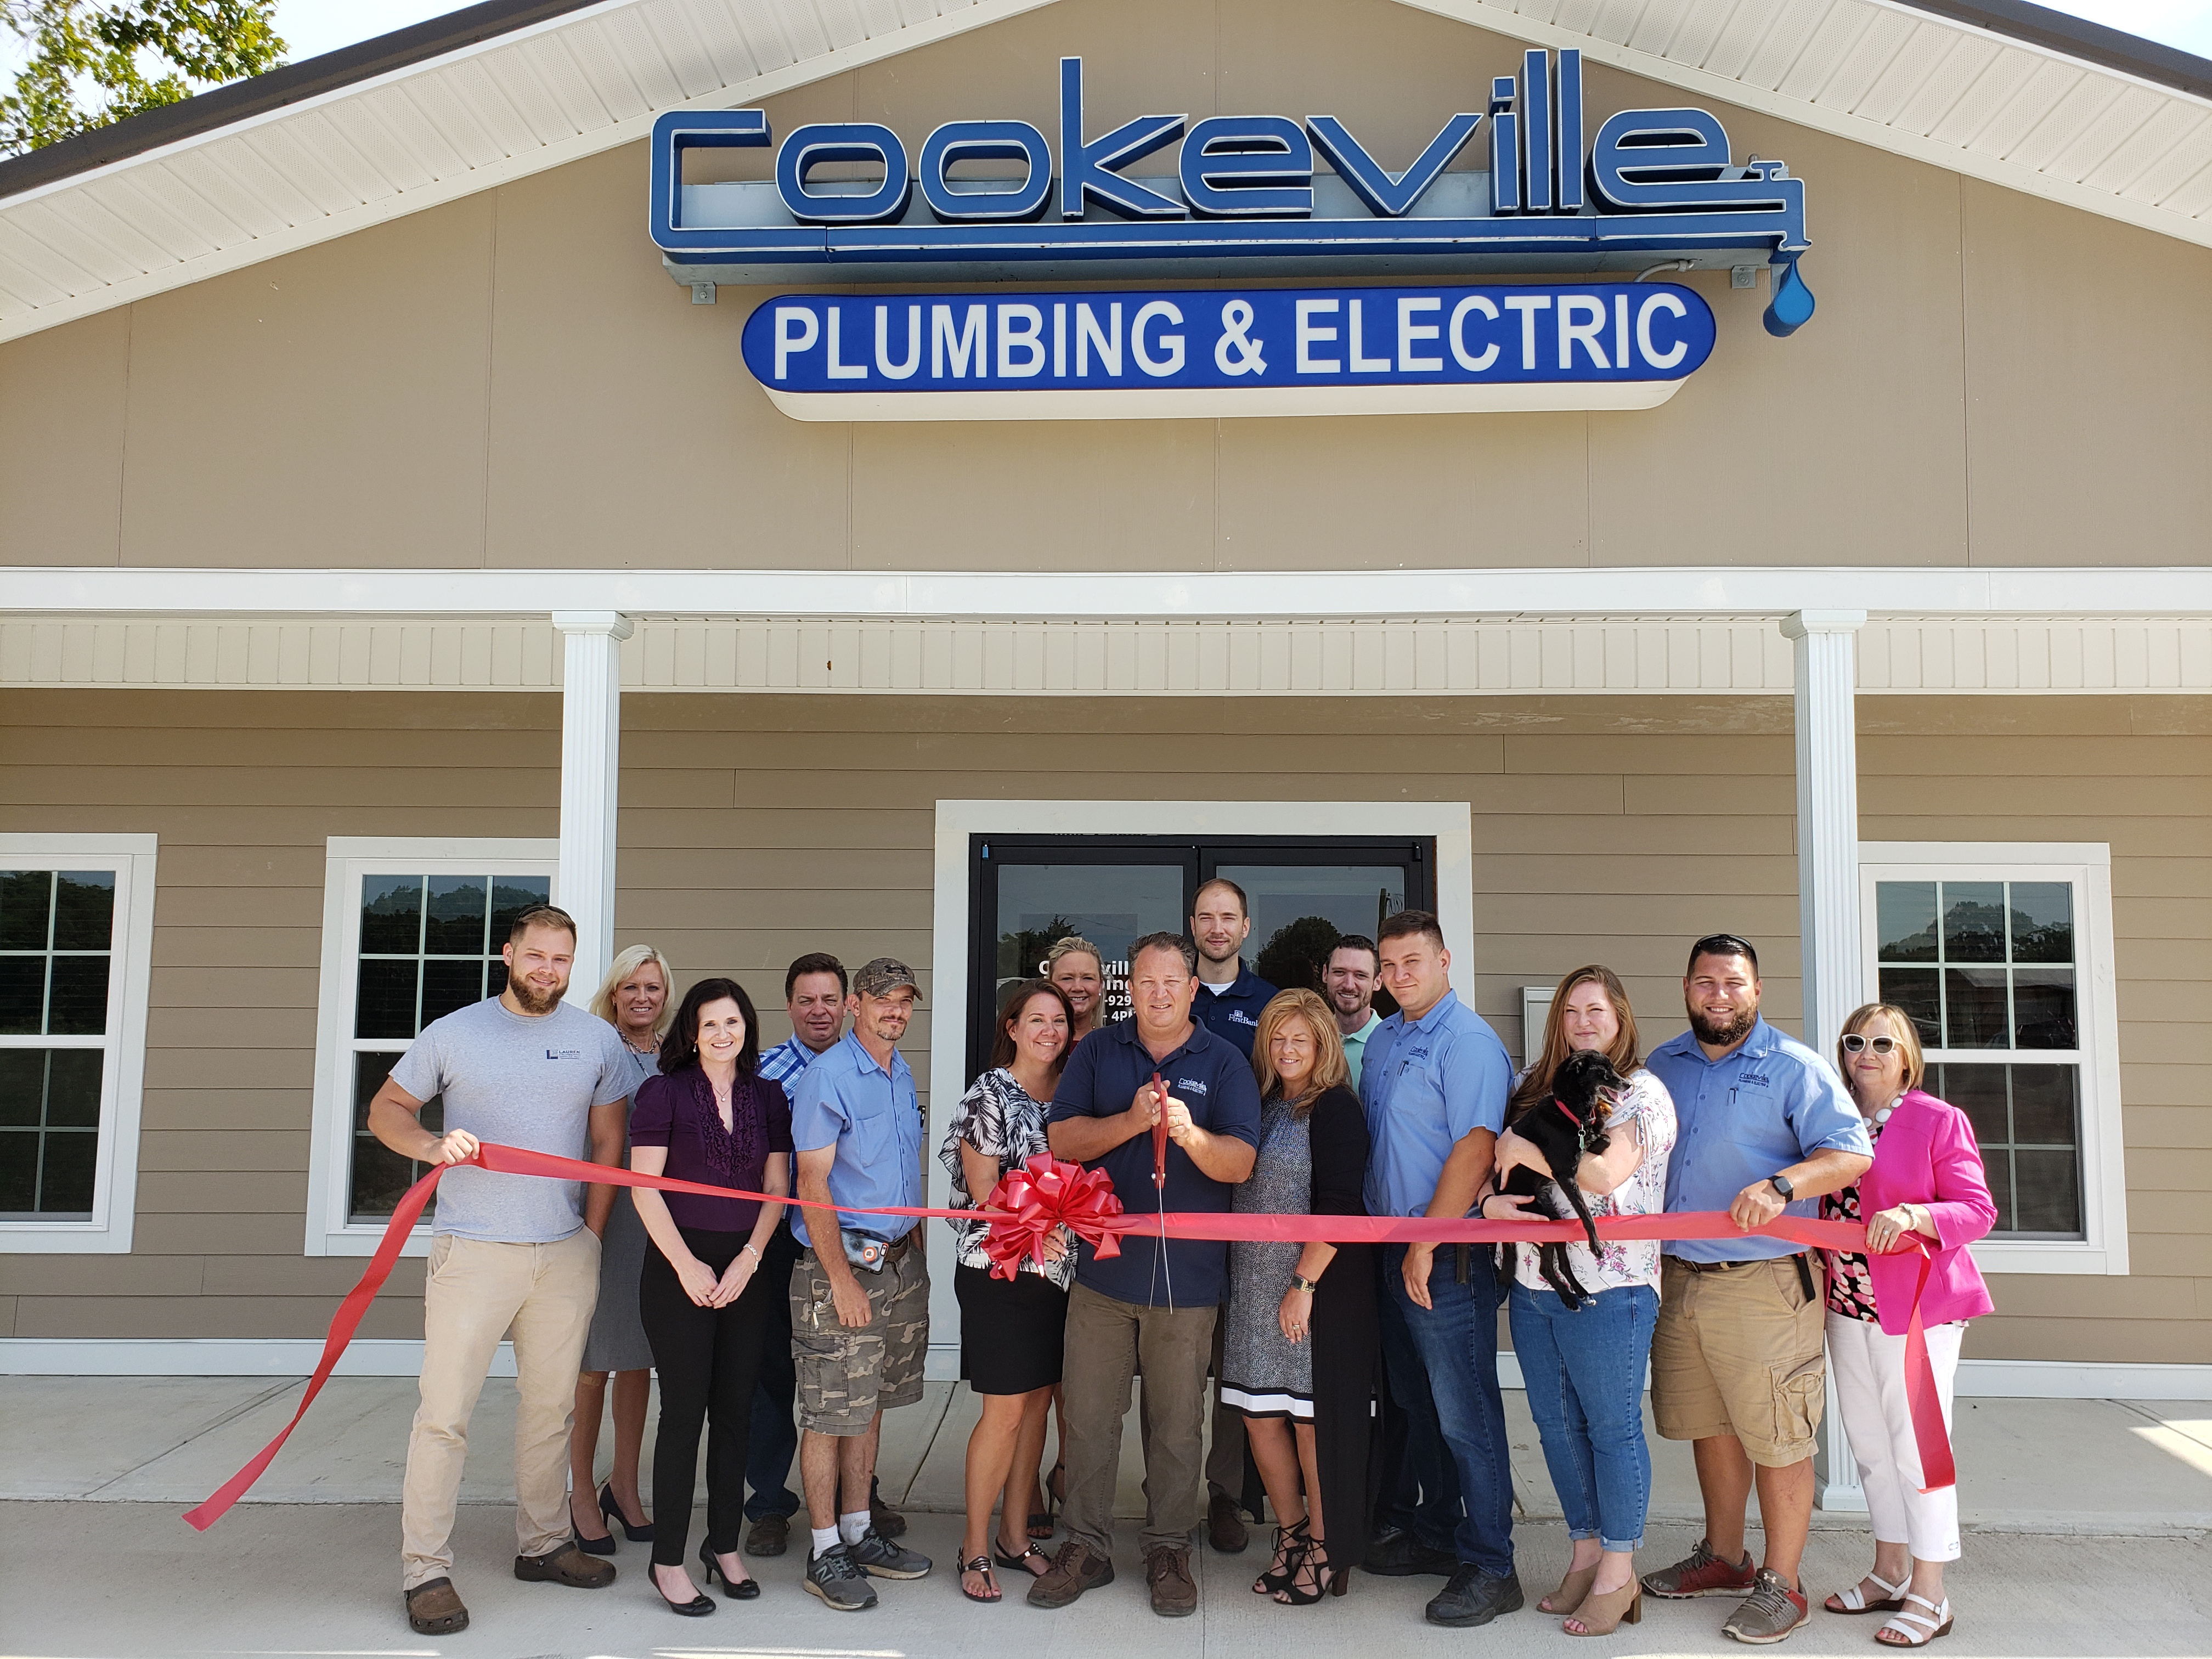 Cookeville Plumbing & Electric celebrates new location